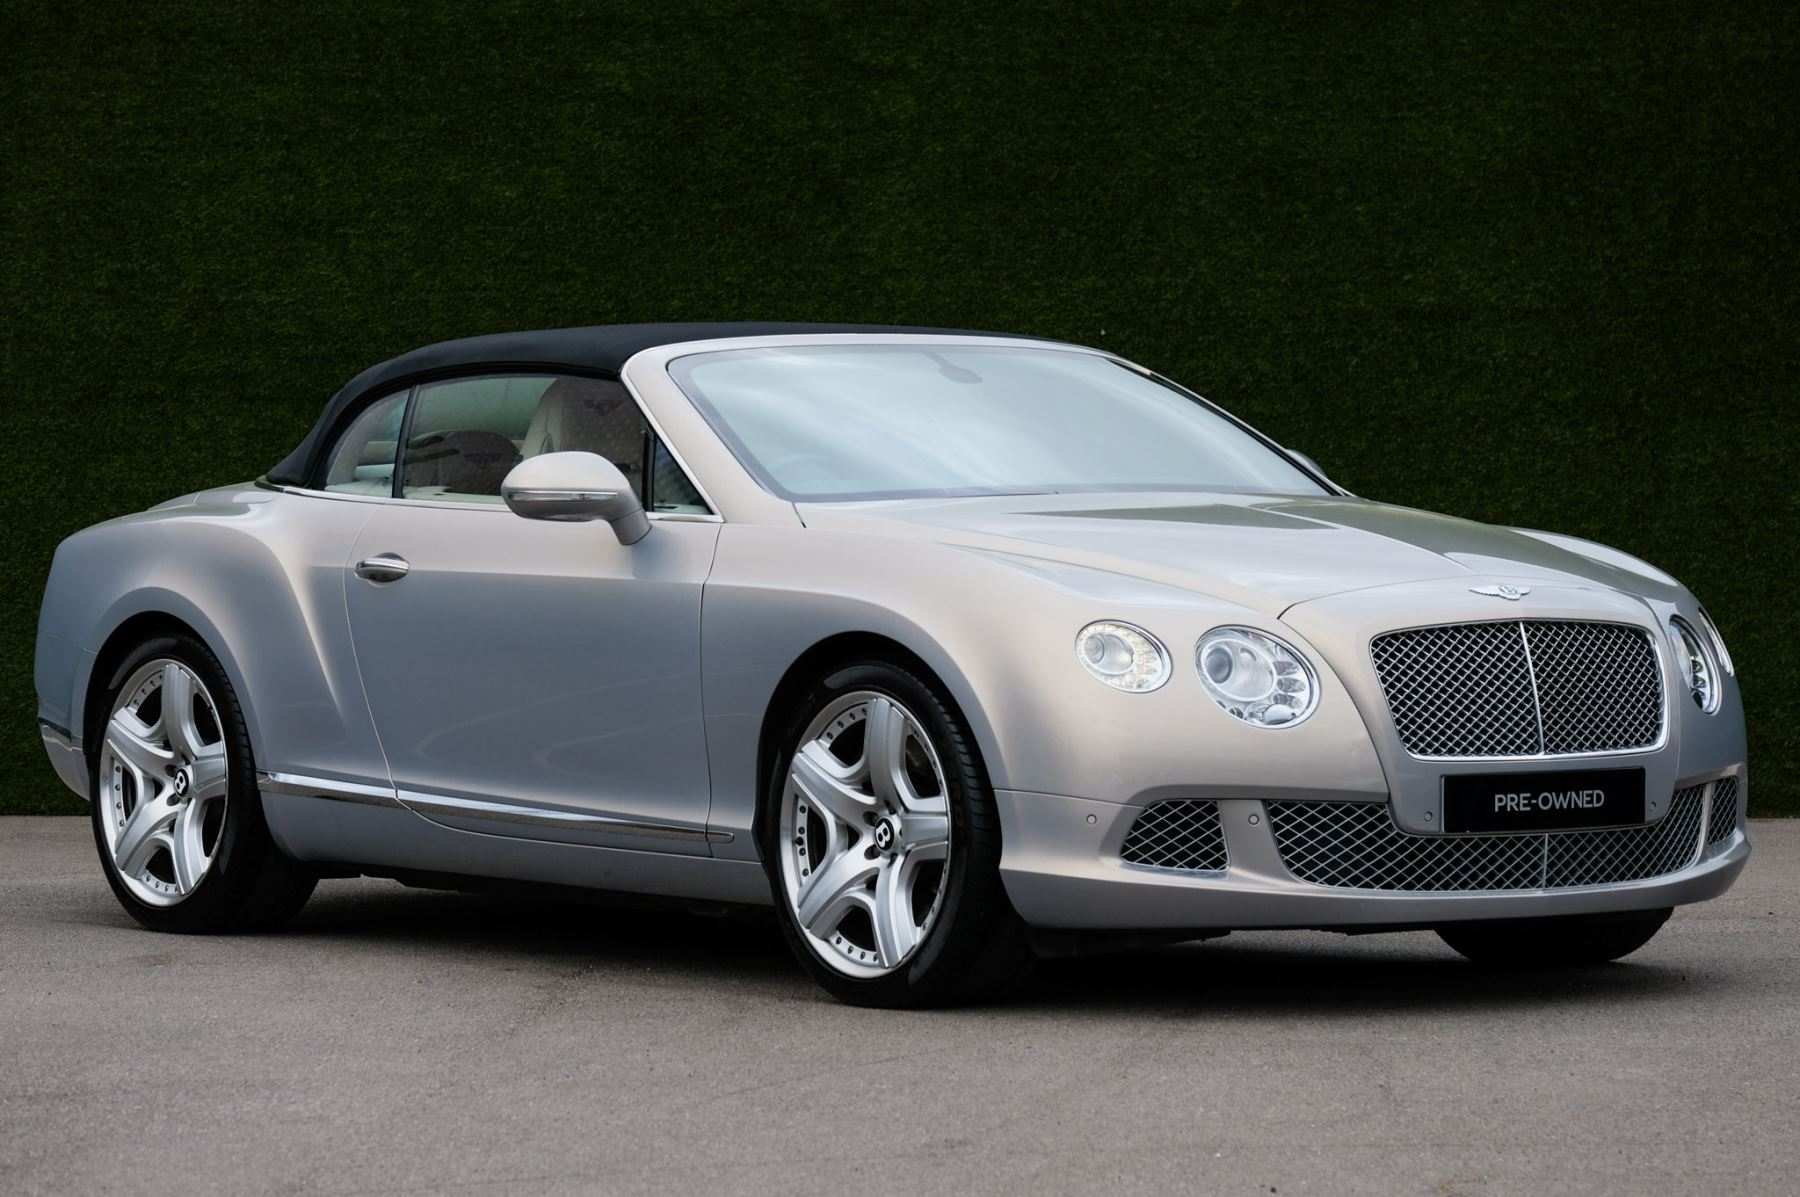 Bentley Continental GTC 6.0 W12 [E85] - Driving Specification Automatic 2 door Convertible (2012)